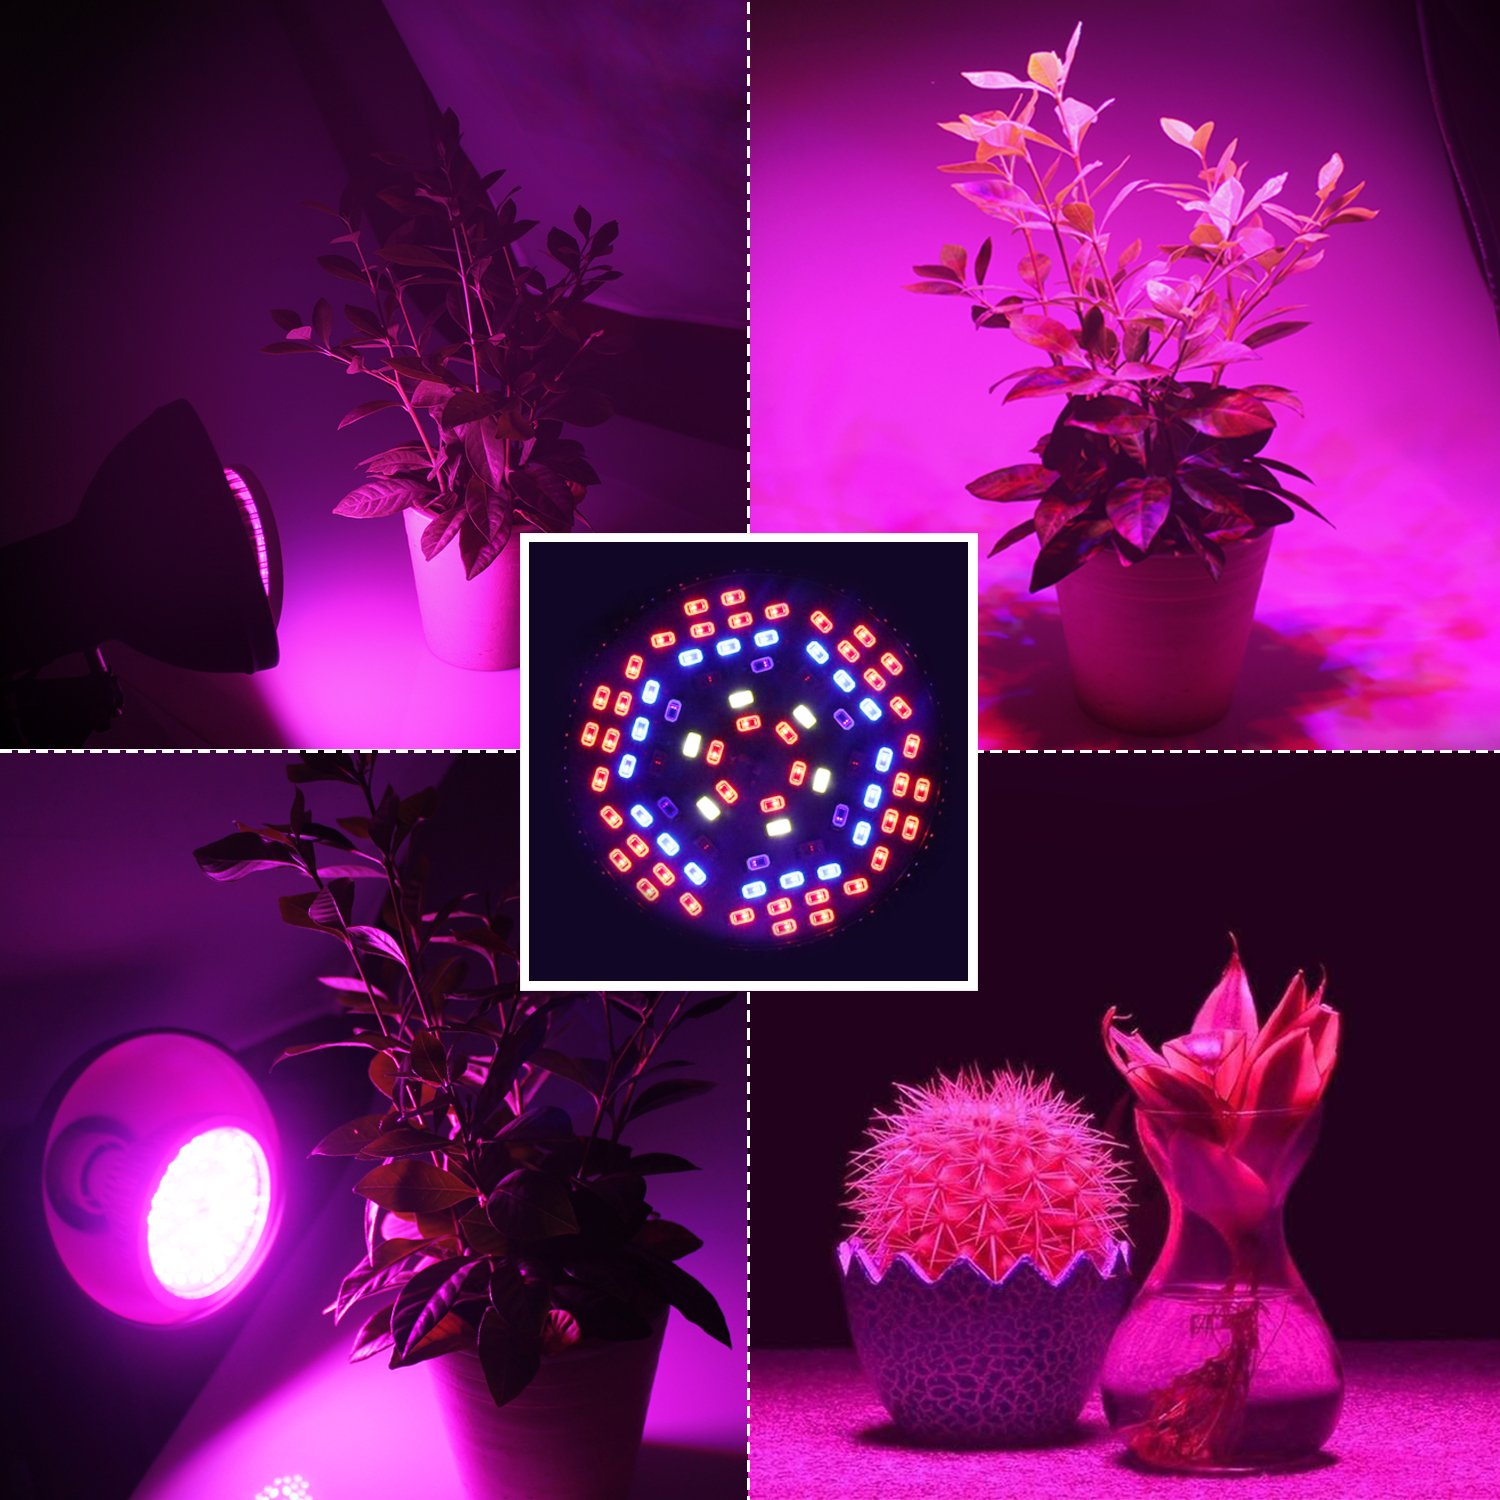 SHEKAR 50W Full Spectrum LED Plant Grow Light Bulb with Shield | Growing Lamp for Home, Indoor Garden Greenhouse and Hydroponic Aquatic (E27, 78LEDs) by SHEKAR (Image #8)